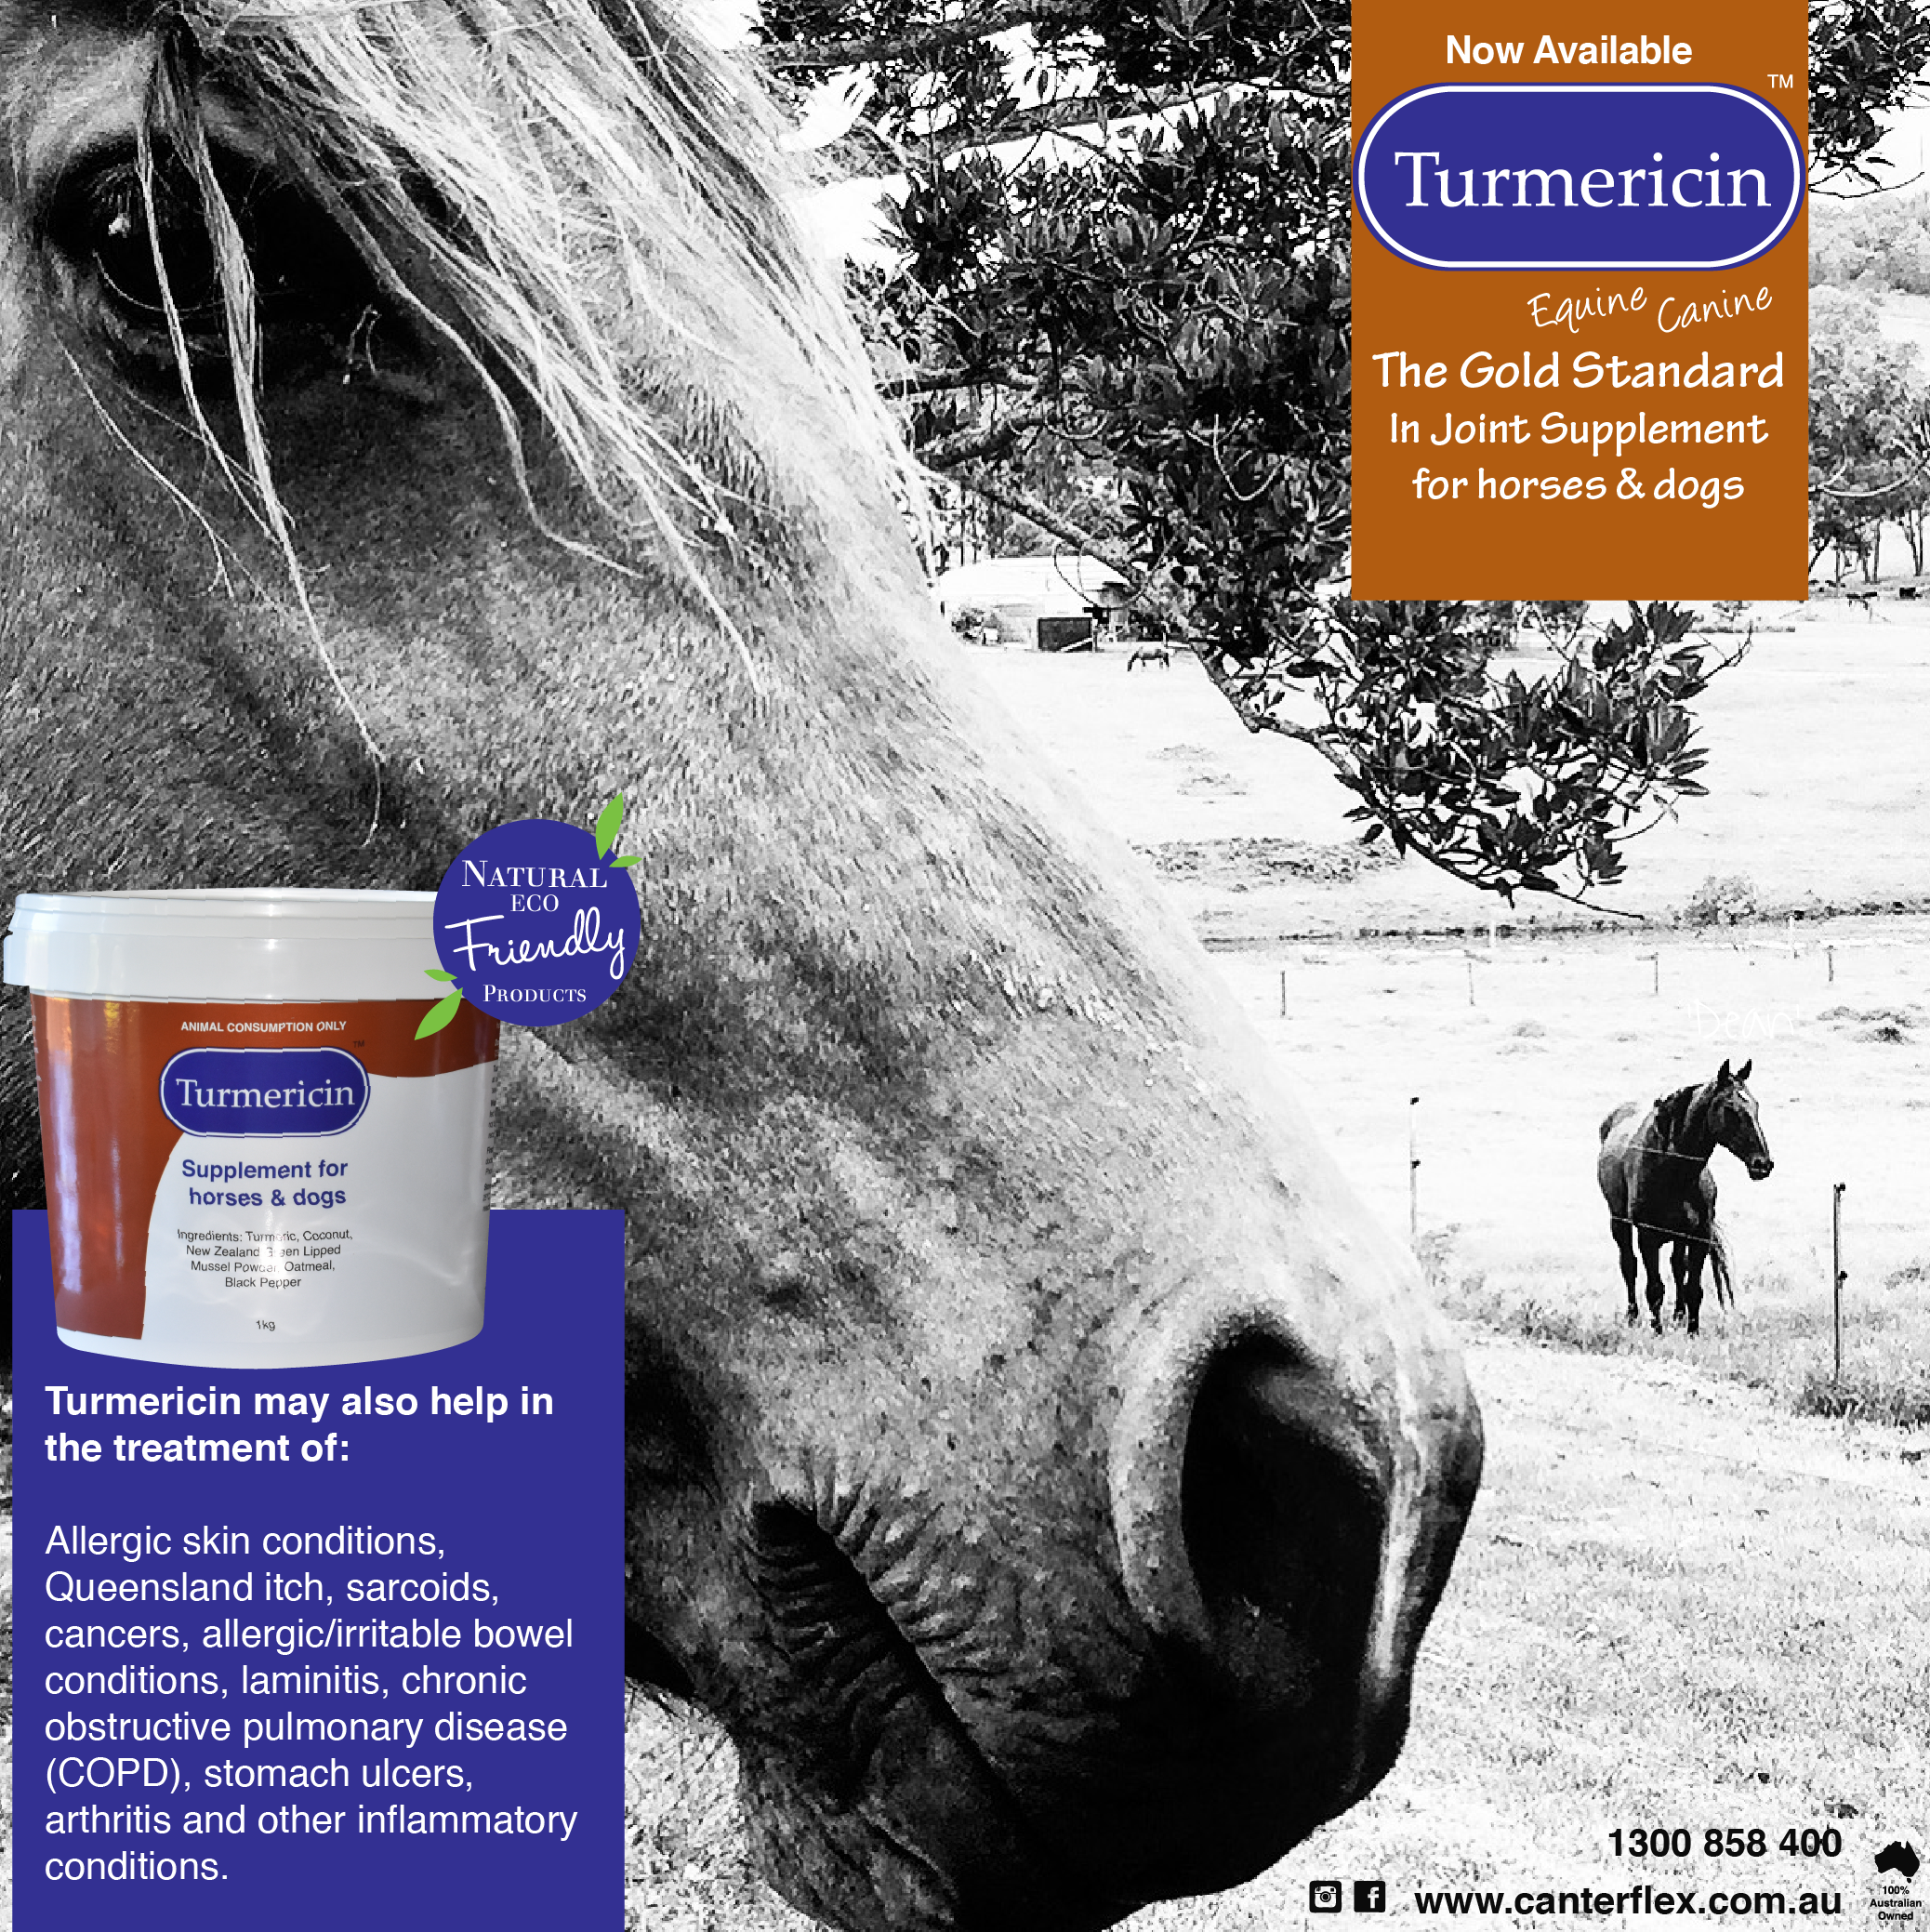 Turmericin For Horses Dogs Allergic Skin Conditions Queensland Itch Sarcoids Cancers Allergic Irritable Bowel Stomach Ulcers Horses Arthritis